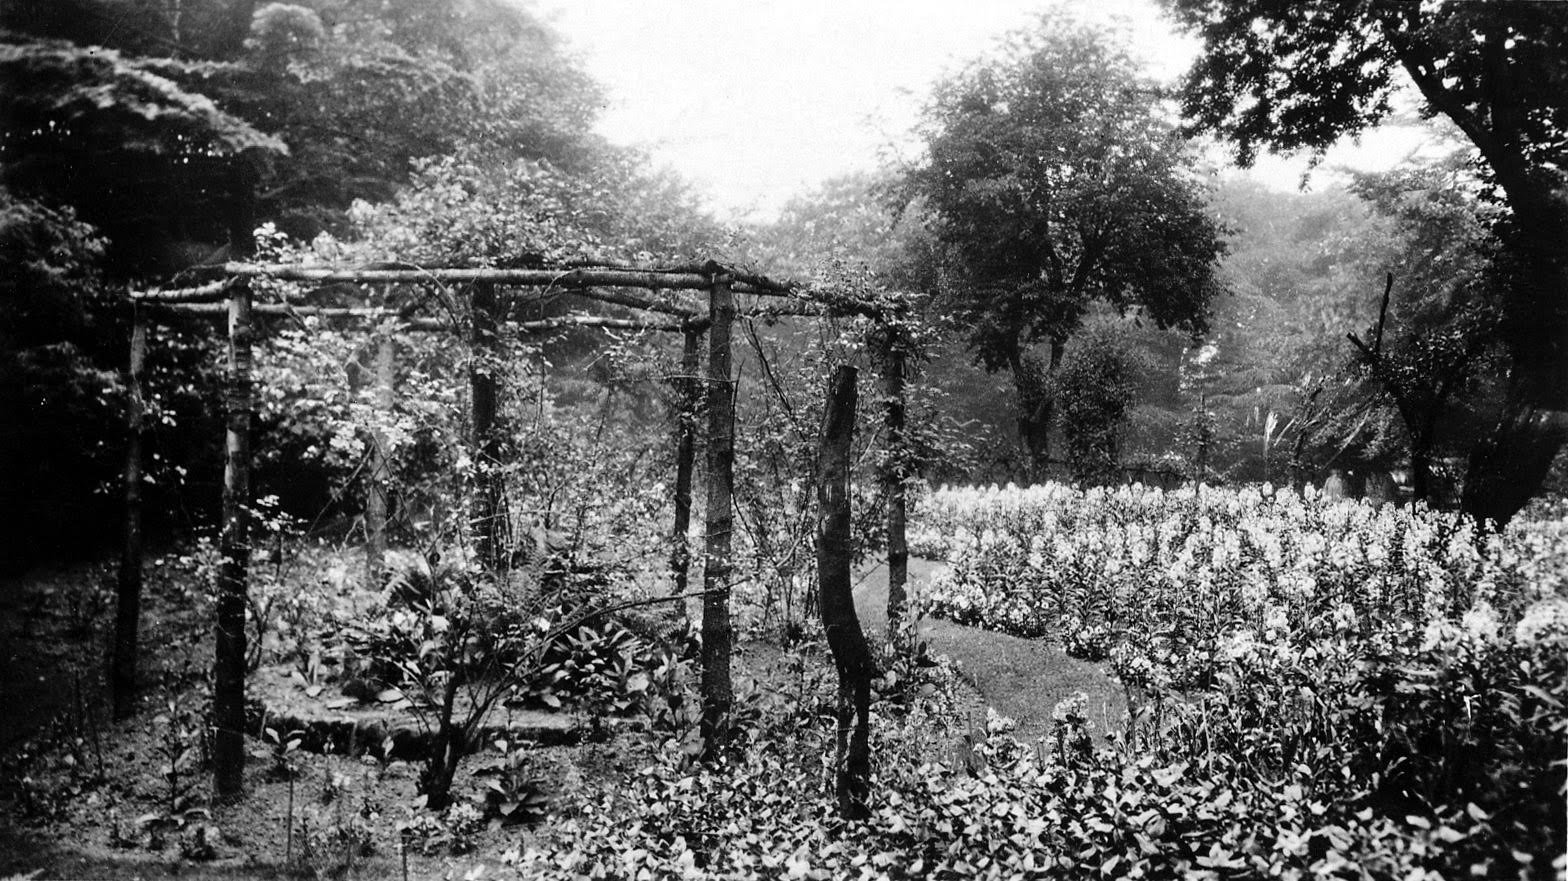 The Hollies, the Old Garden, 1928